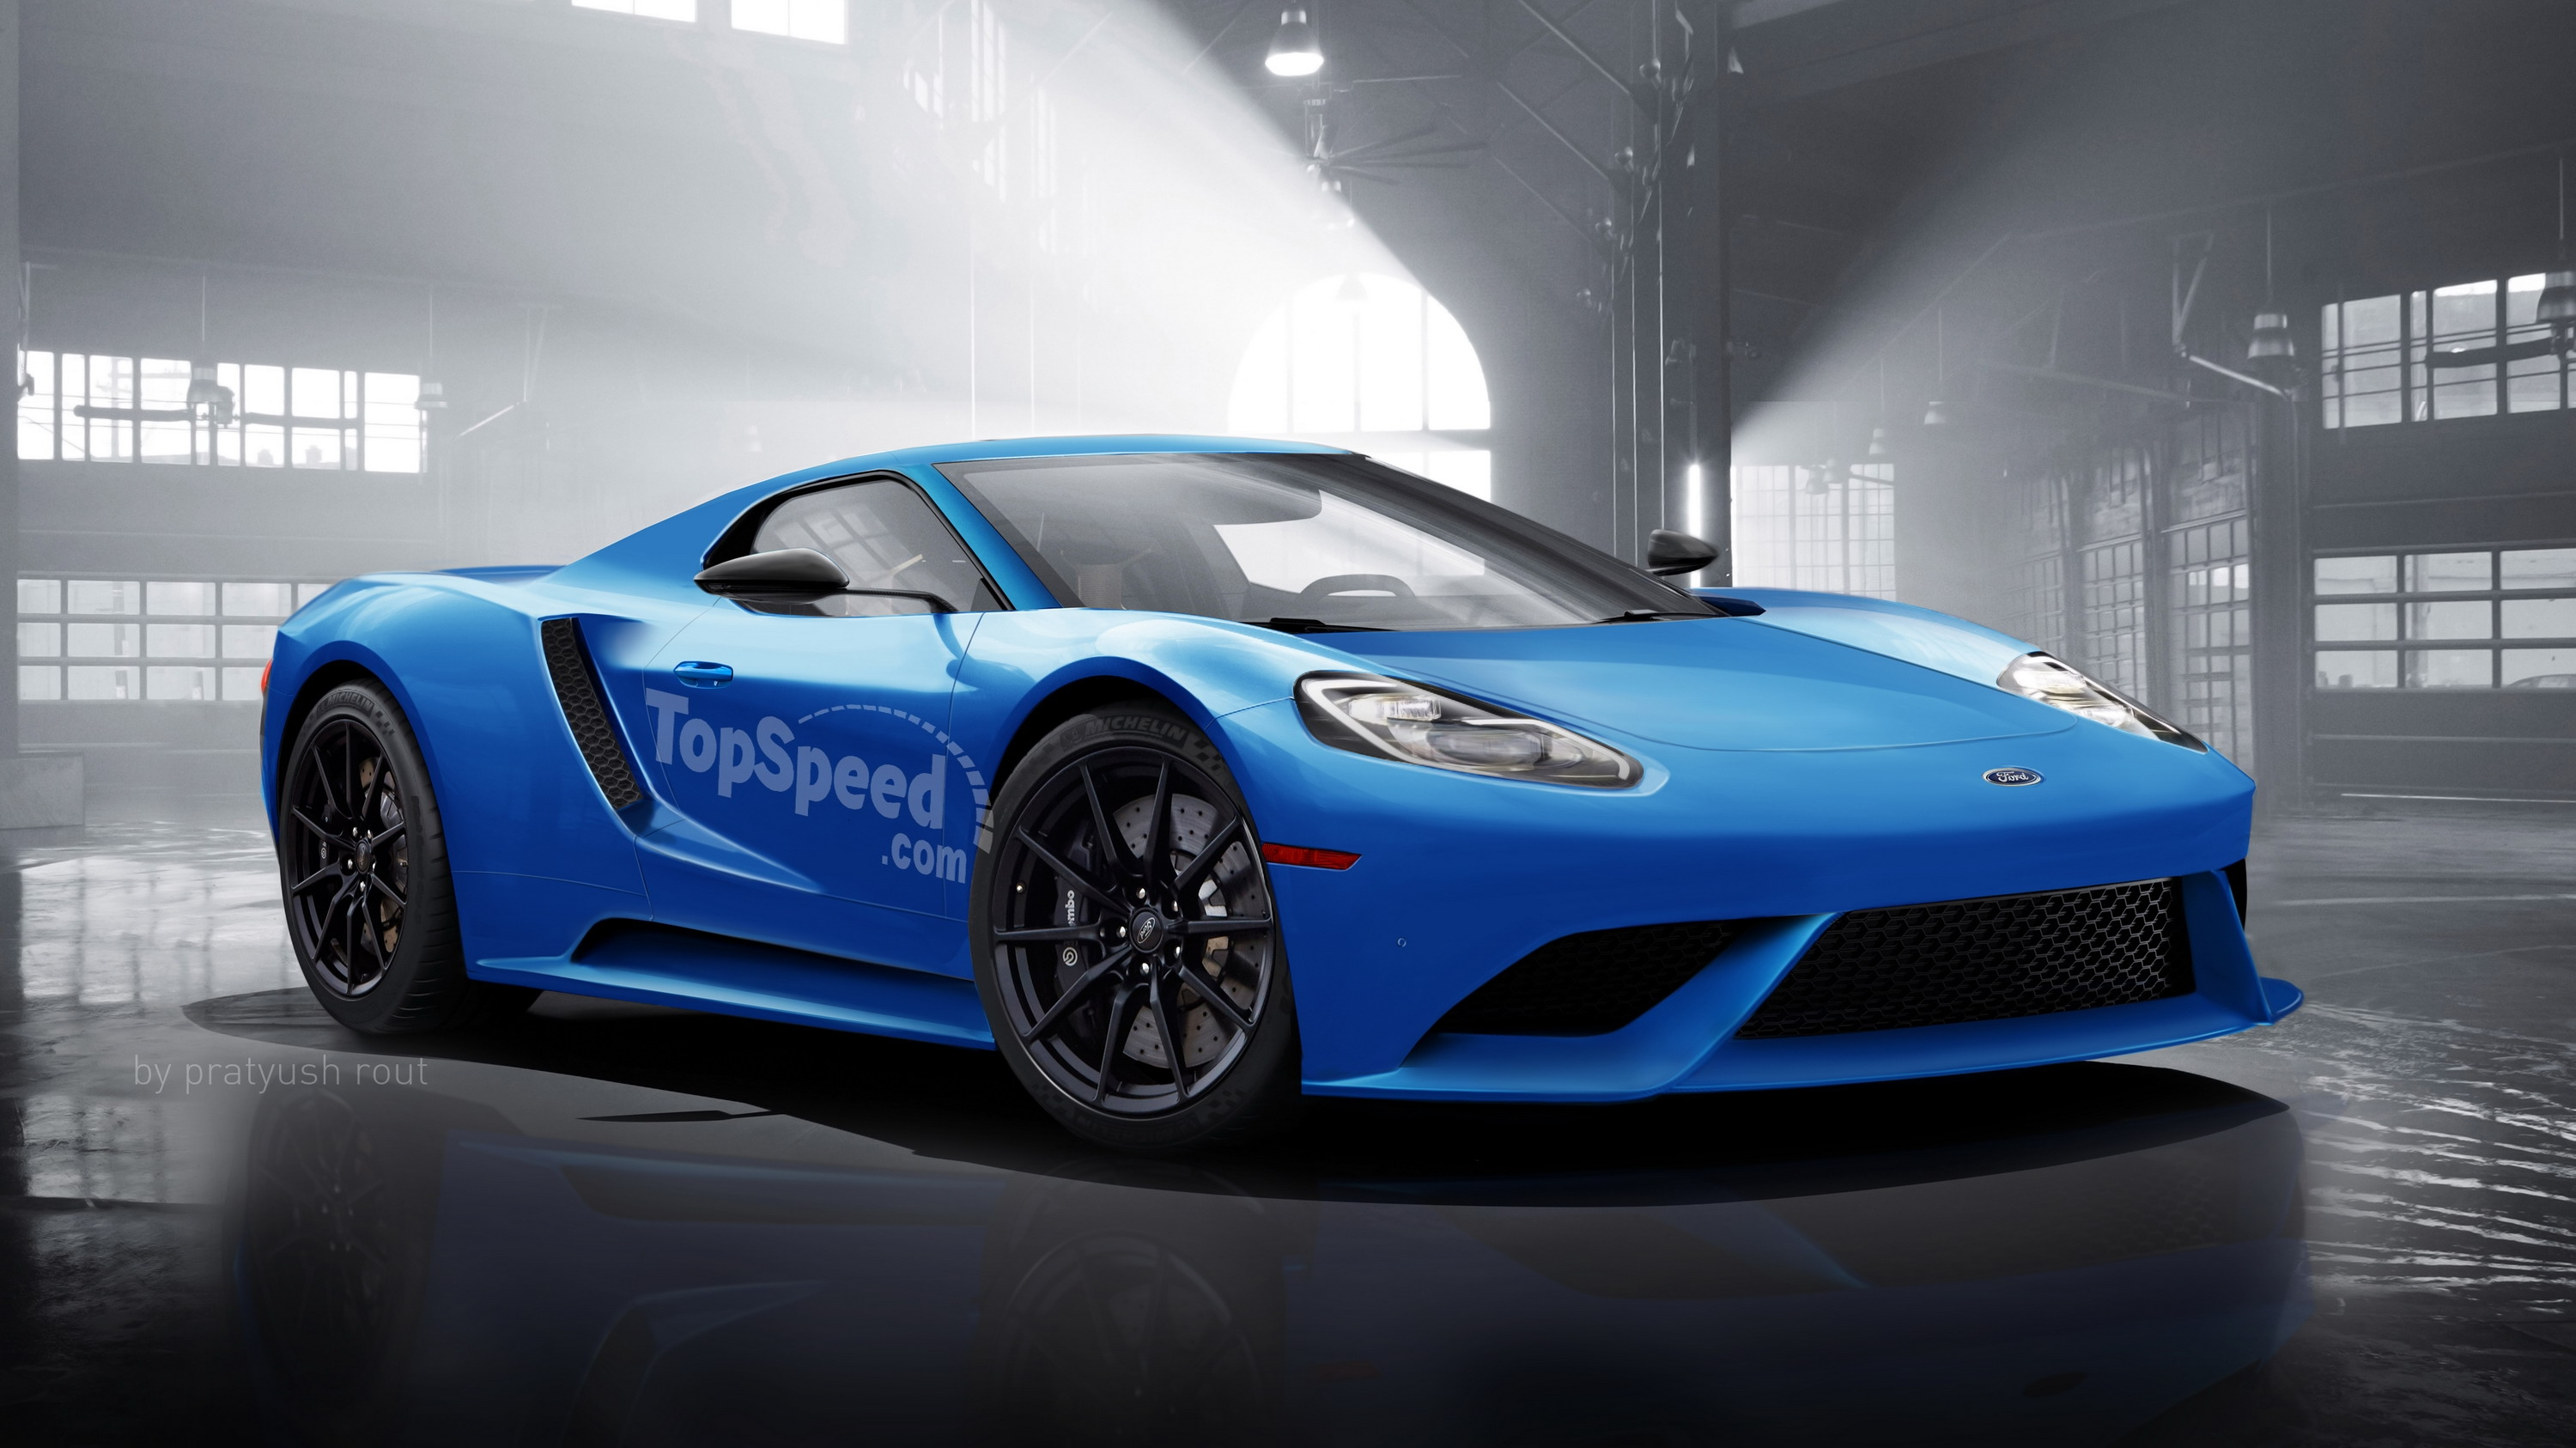 2020 Ford GTS Pictures, Photos, Wallpapers. | Top Speed